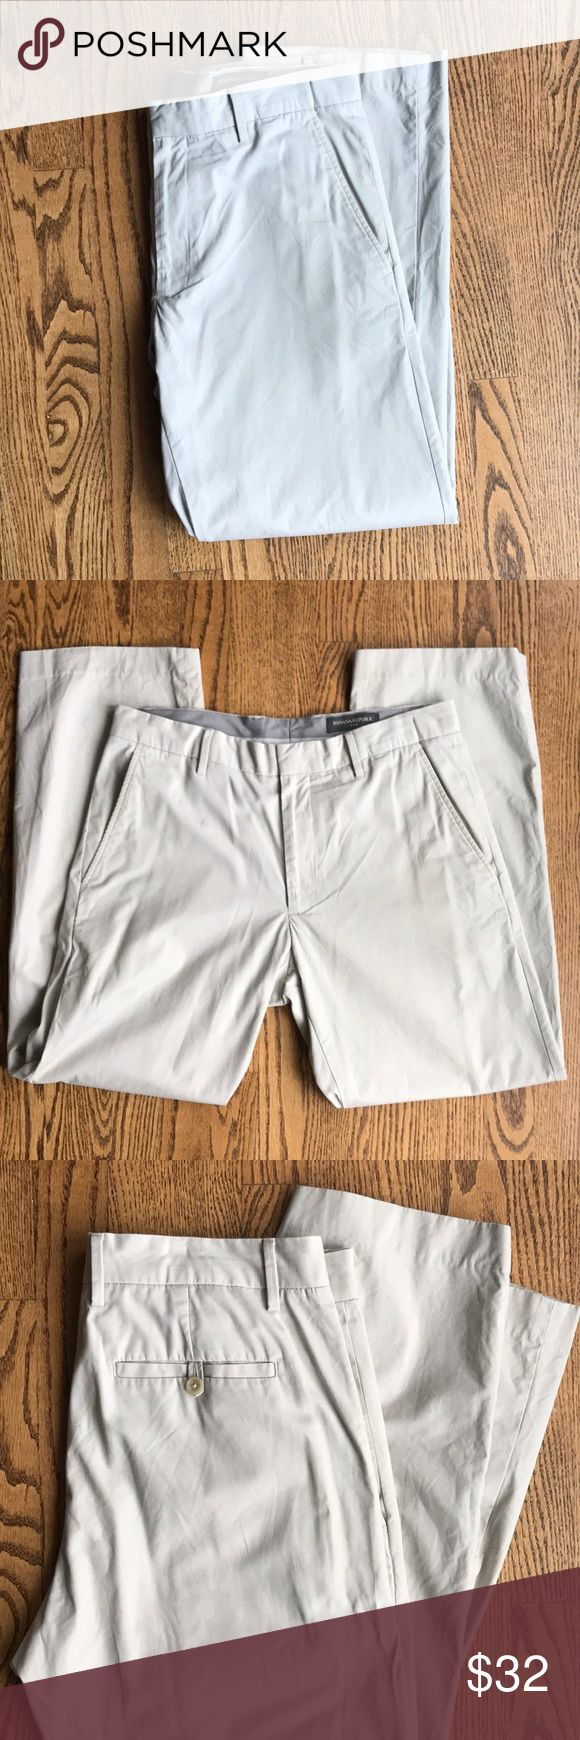 Banana Republic Men's Tan Chinos 32x32 32L x 32W. Great condition.  Check out my other Men's listings to bundle and save. Banana Republic Pants Chinos & Khakis